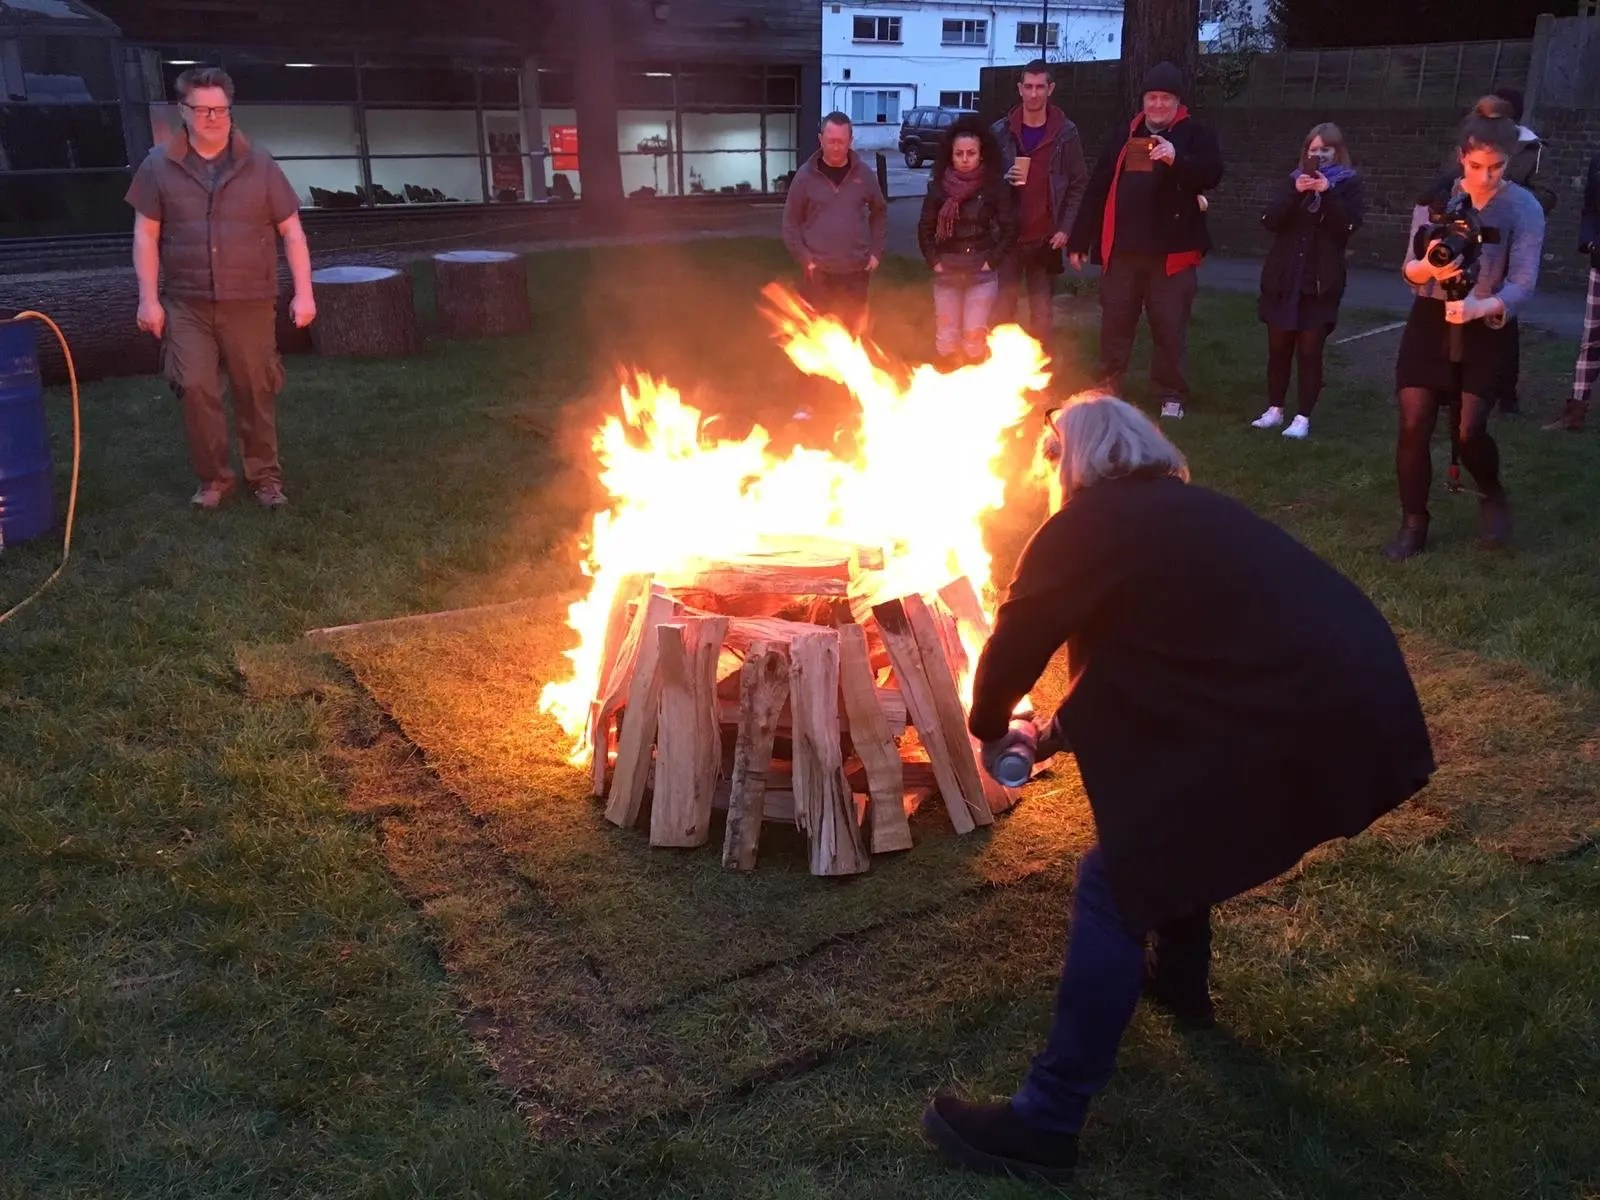 Photo of the fire being lit to create the hot coals for a fire walk